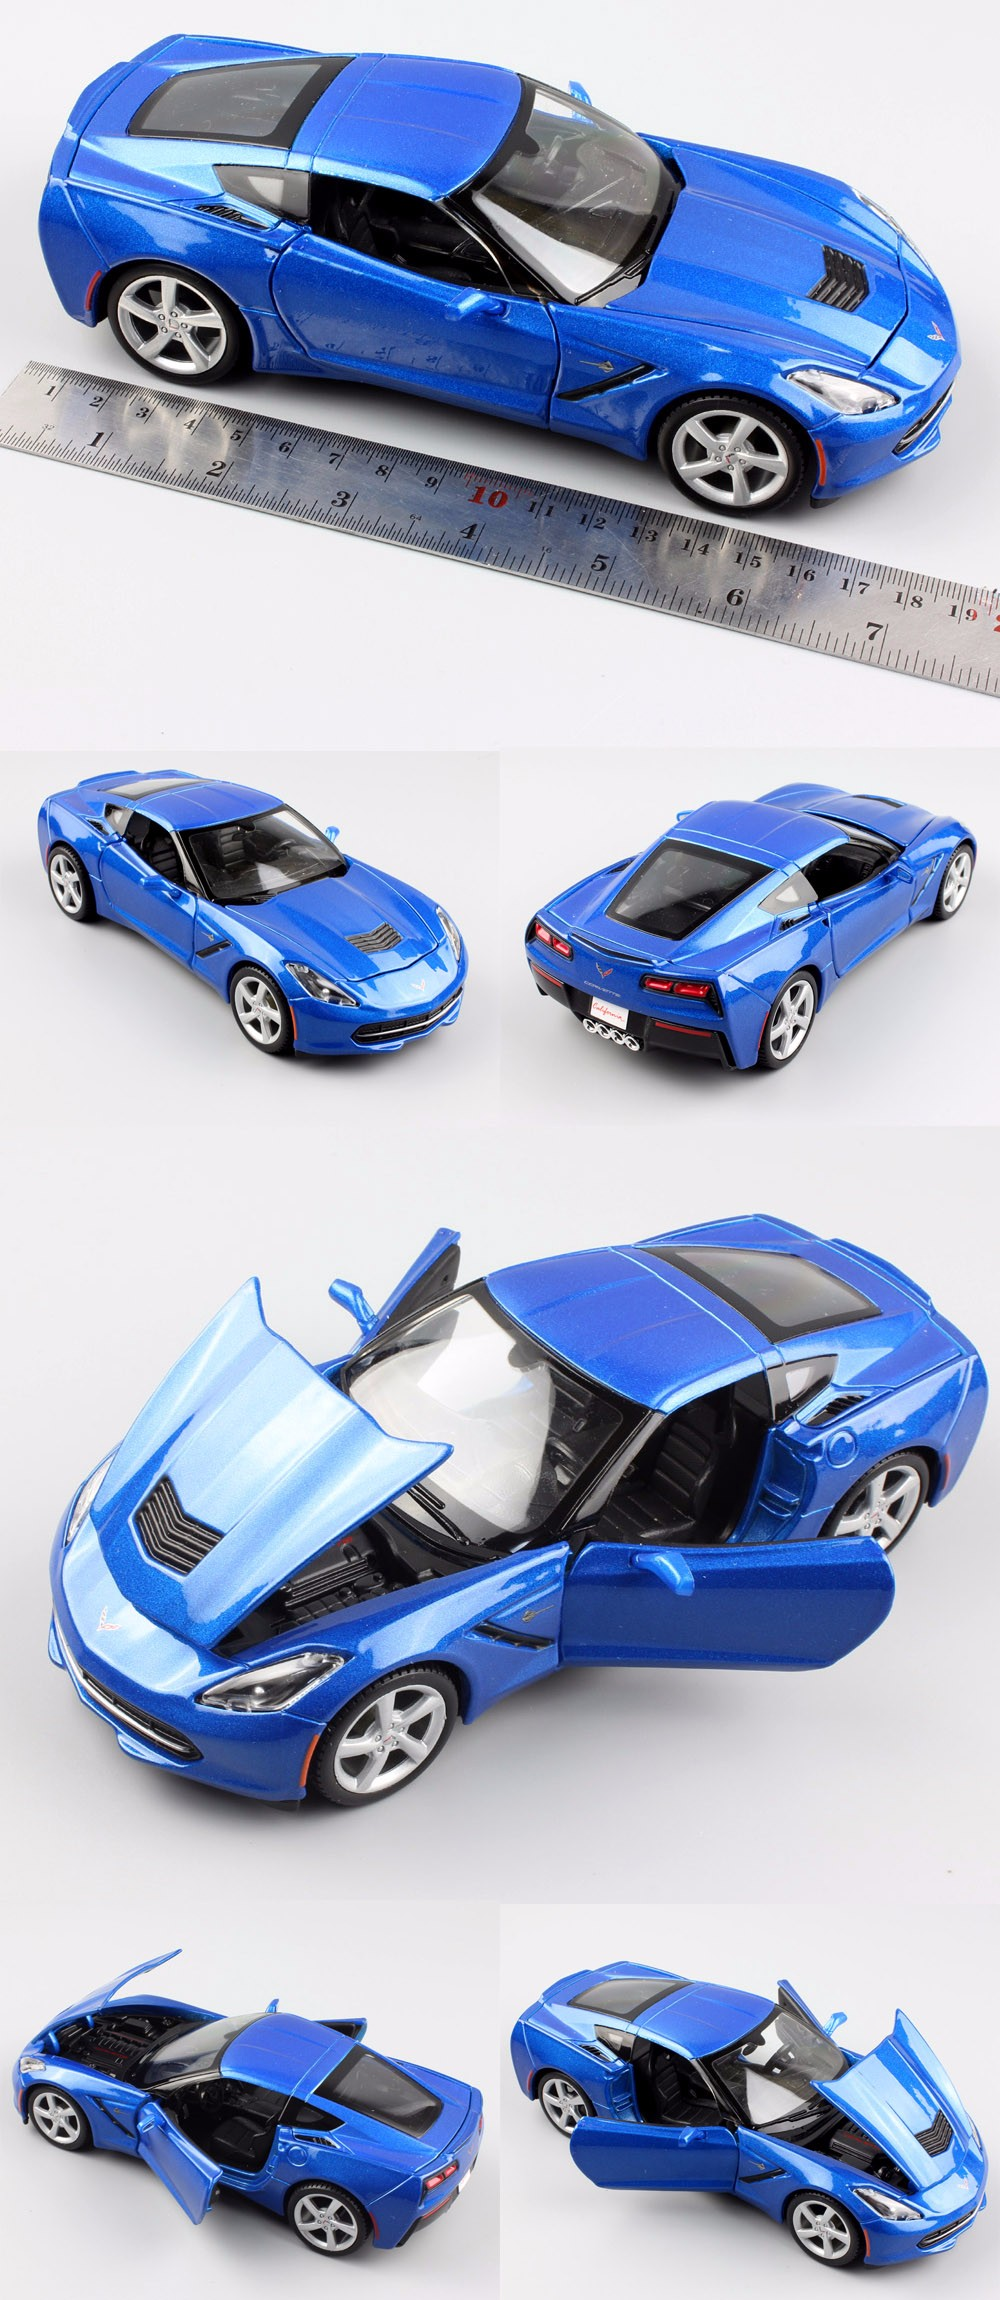 1:24 Scale kids 2014 Stingray Coupe C7 metallic diecast mannequin tank miniature racing auto vehicles styling toys reward for youths boys